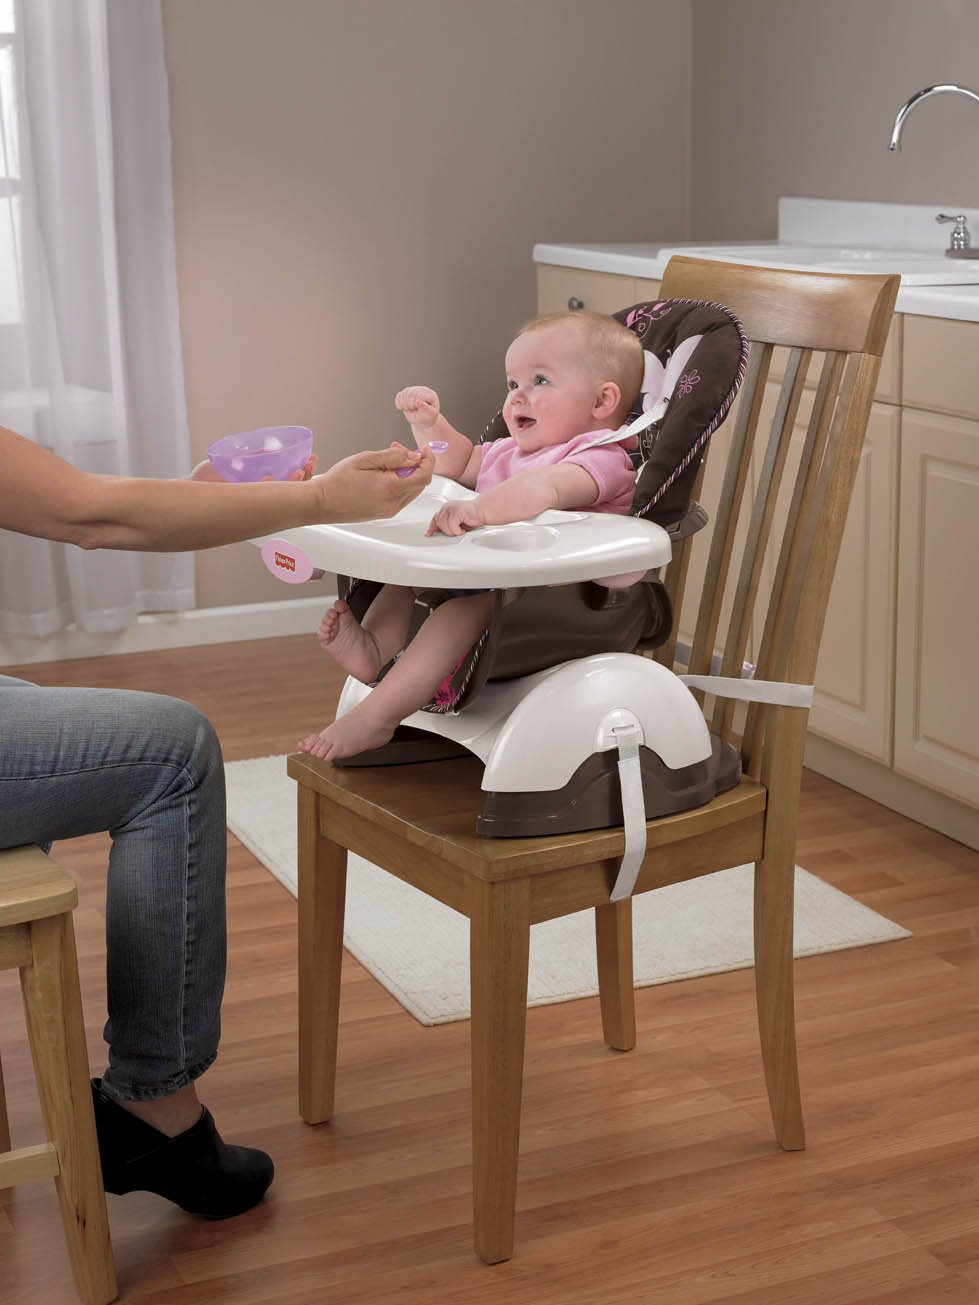 Amazon.com : Fisher-Price Space Saver High Chair, Mocha Butterfly ...